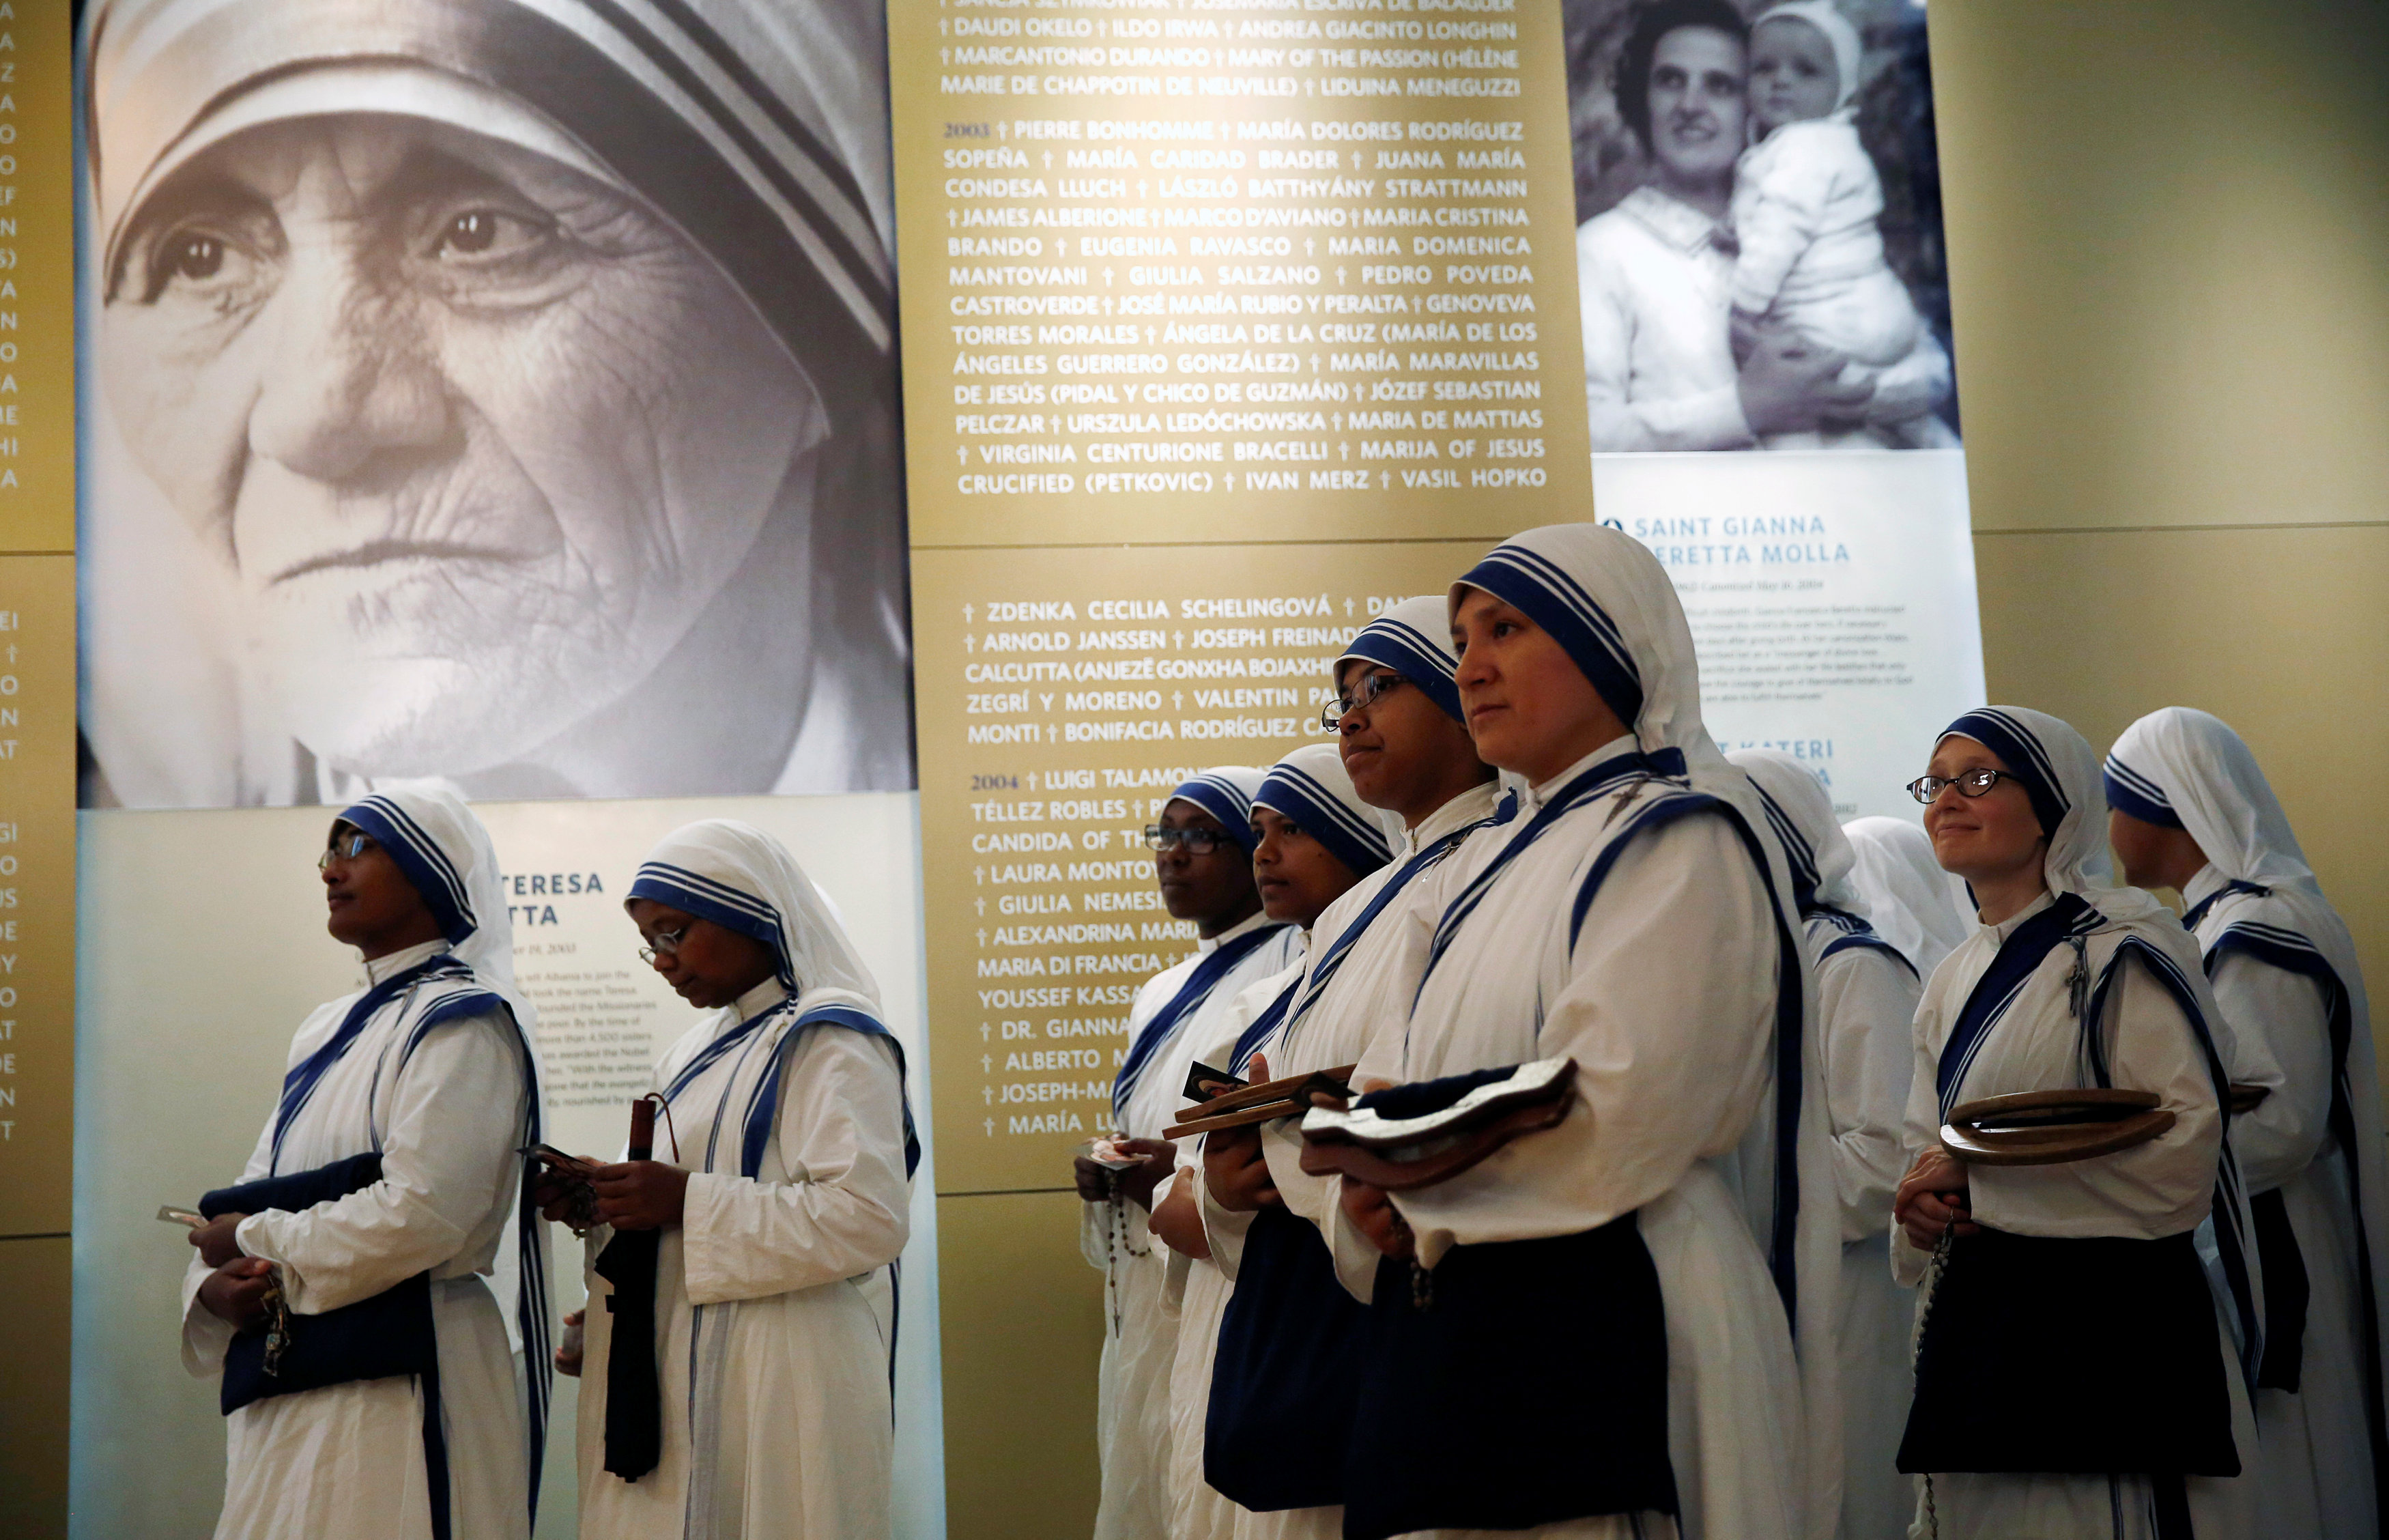 Members of Mother Teresa's order, the Missionaries of Charity, stand under a photograph before the unveiling of an official canonization portrait at the John Paul II National Shrine in Washington